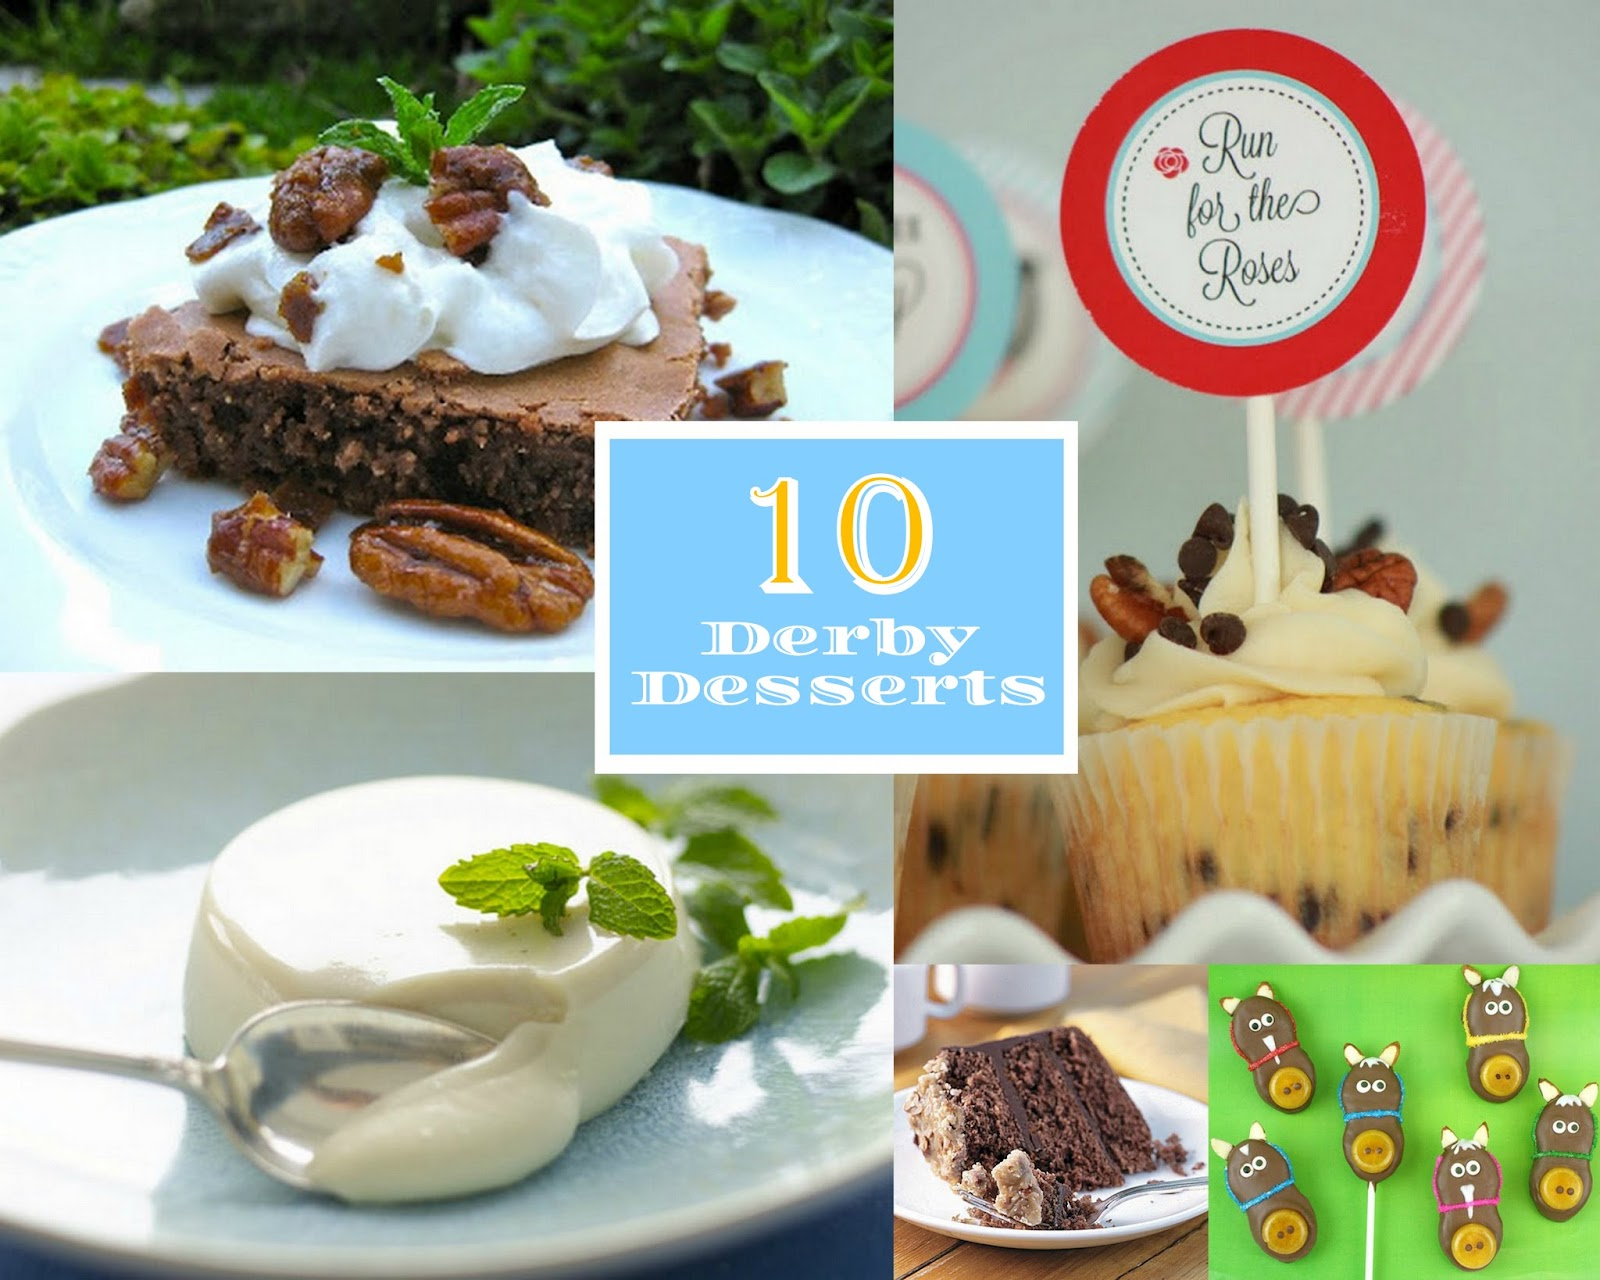 10 delicious kentucky derby dessert recipes mirabelle creations 10 delicious kentucky derby dessert recipes forumfinder Image collections